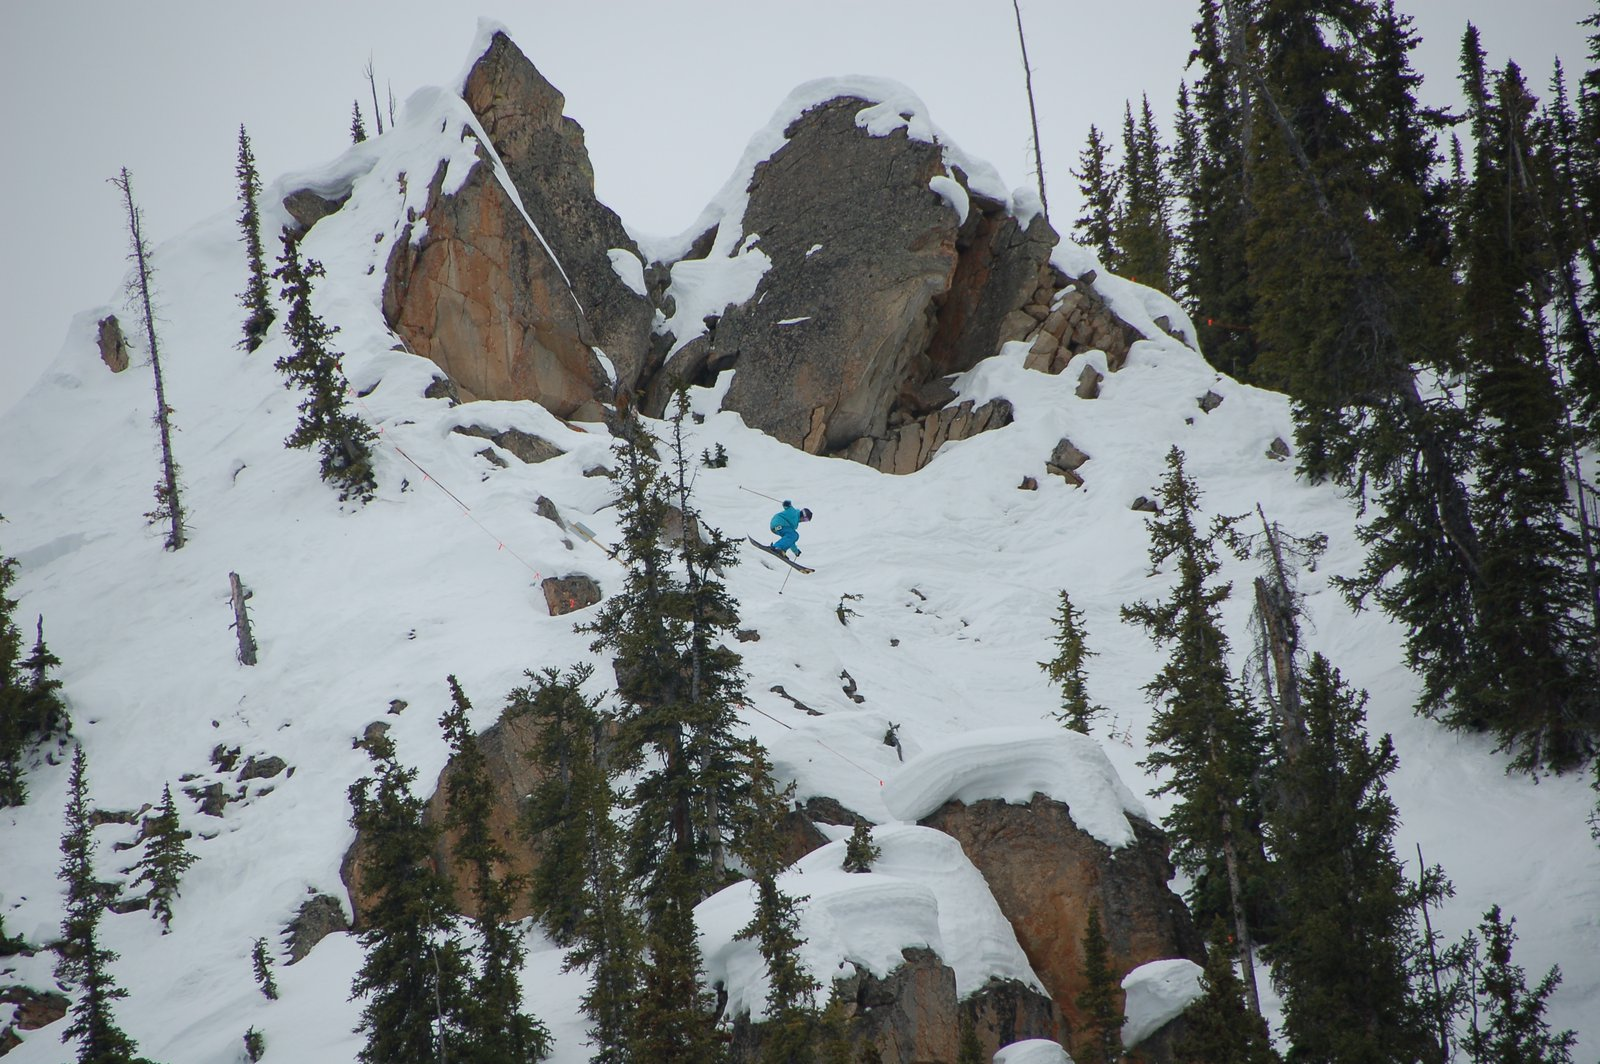 Junior Freeskiing tour in Crested butte